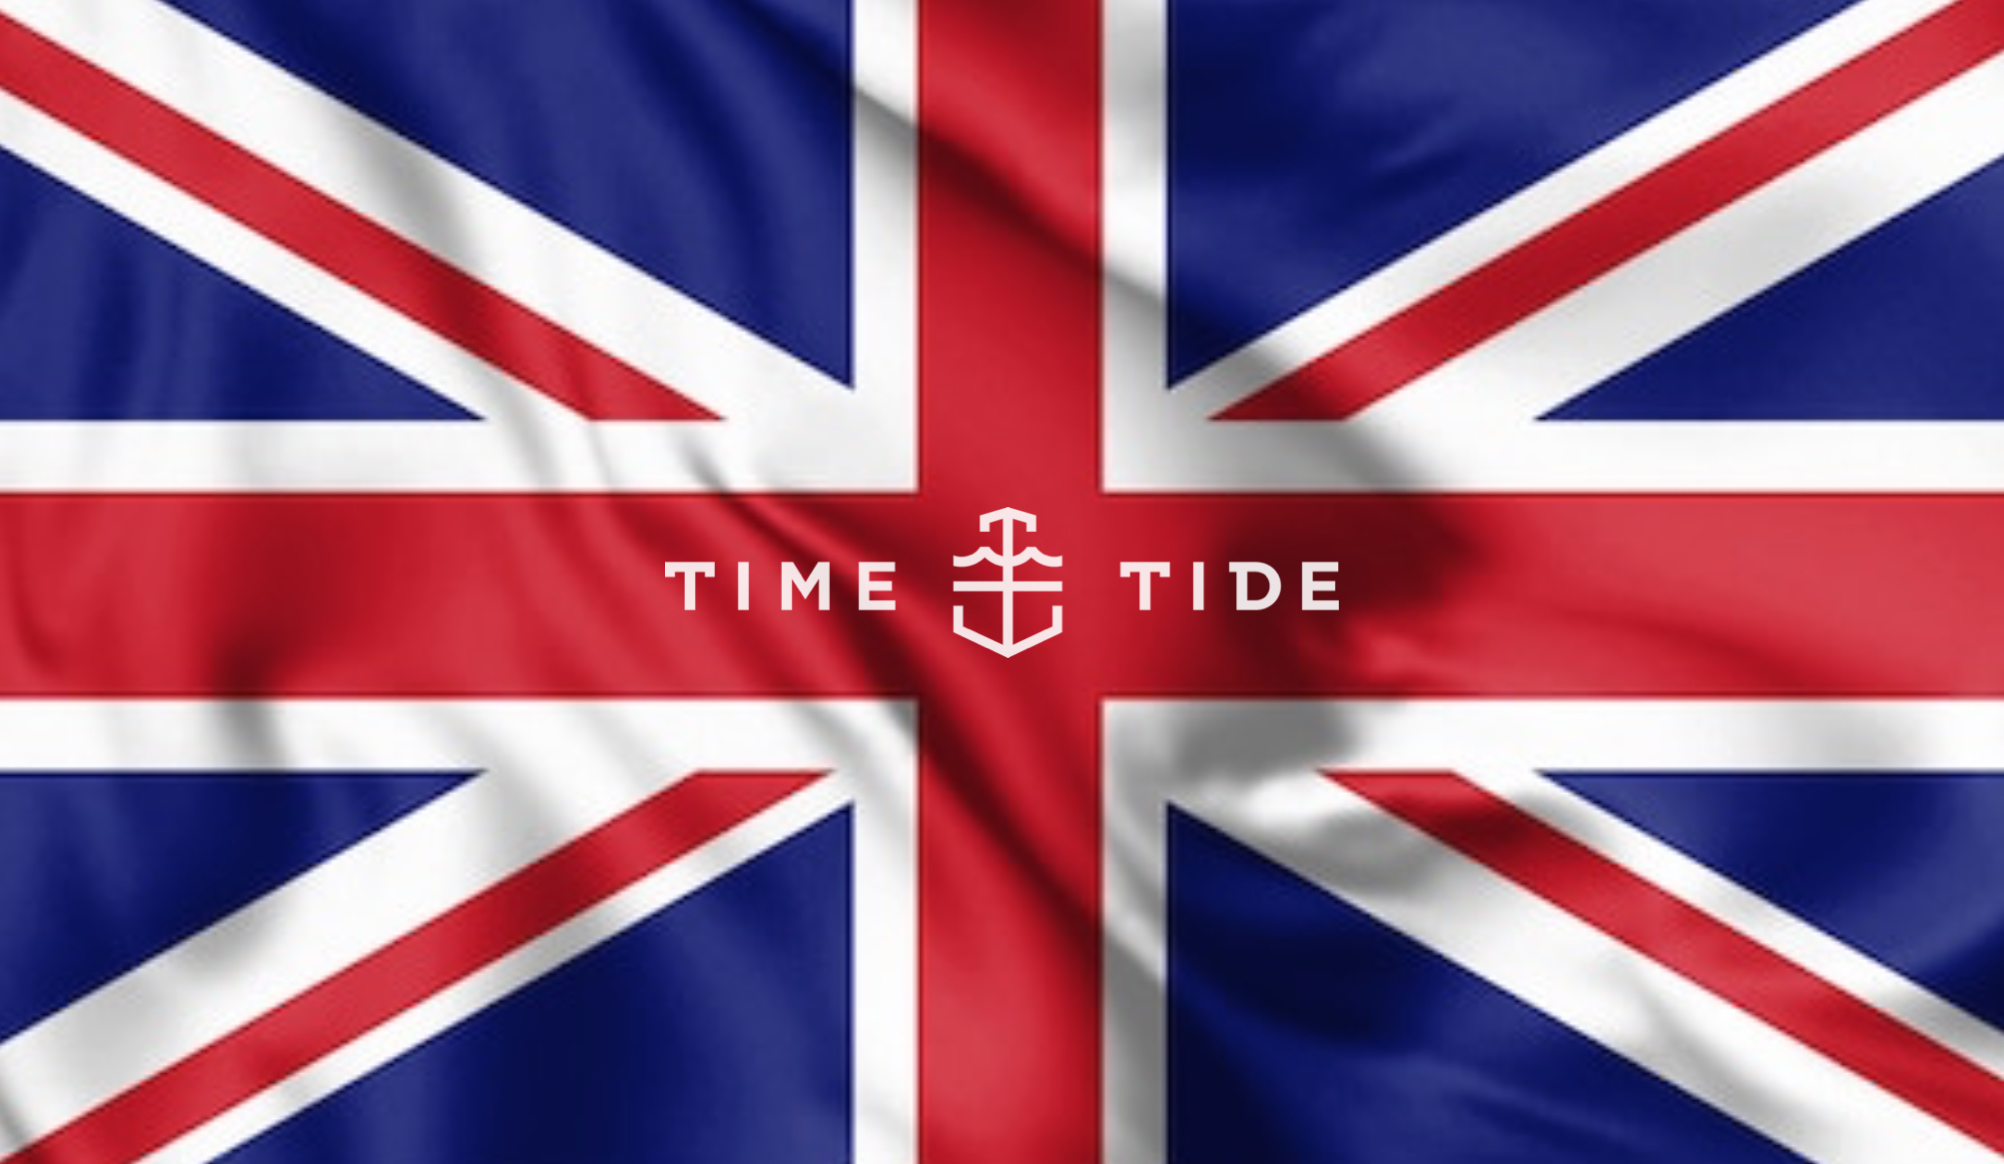 Good morning, London! Time and Tide Watches opens first international office in the UK, to be run by former GQ Australia Editor, Mike Christensen